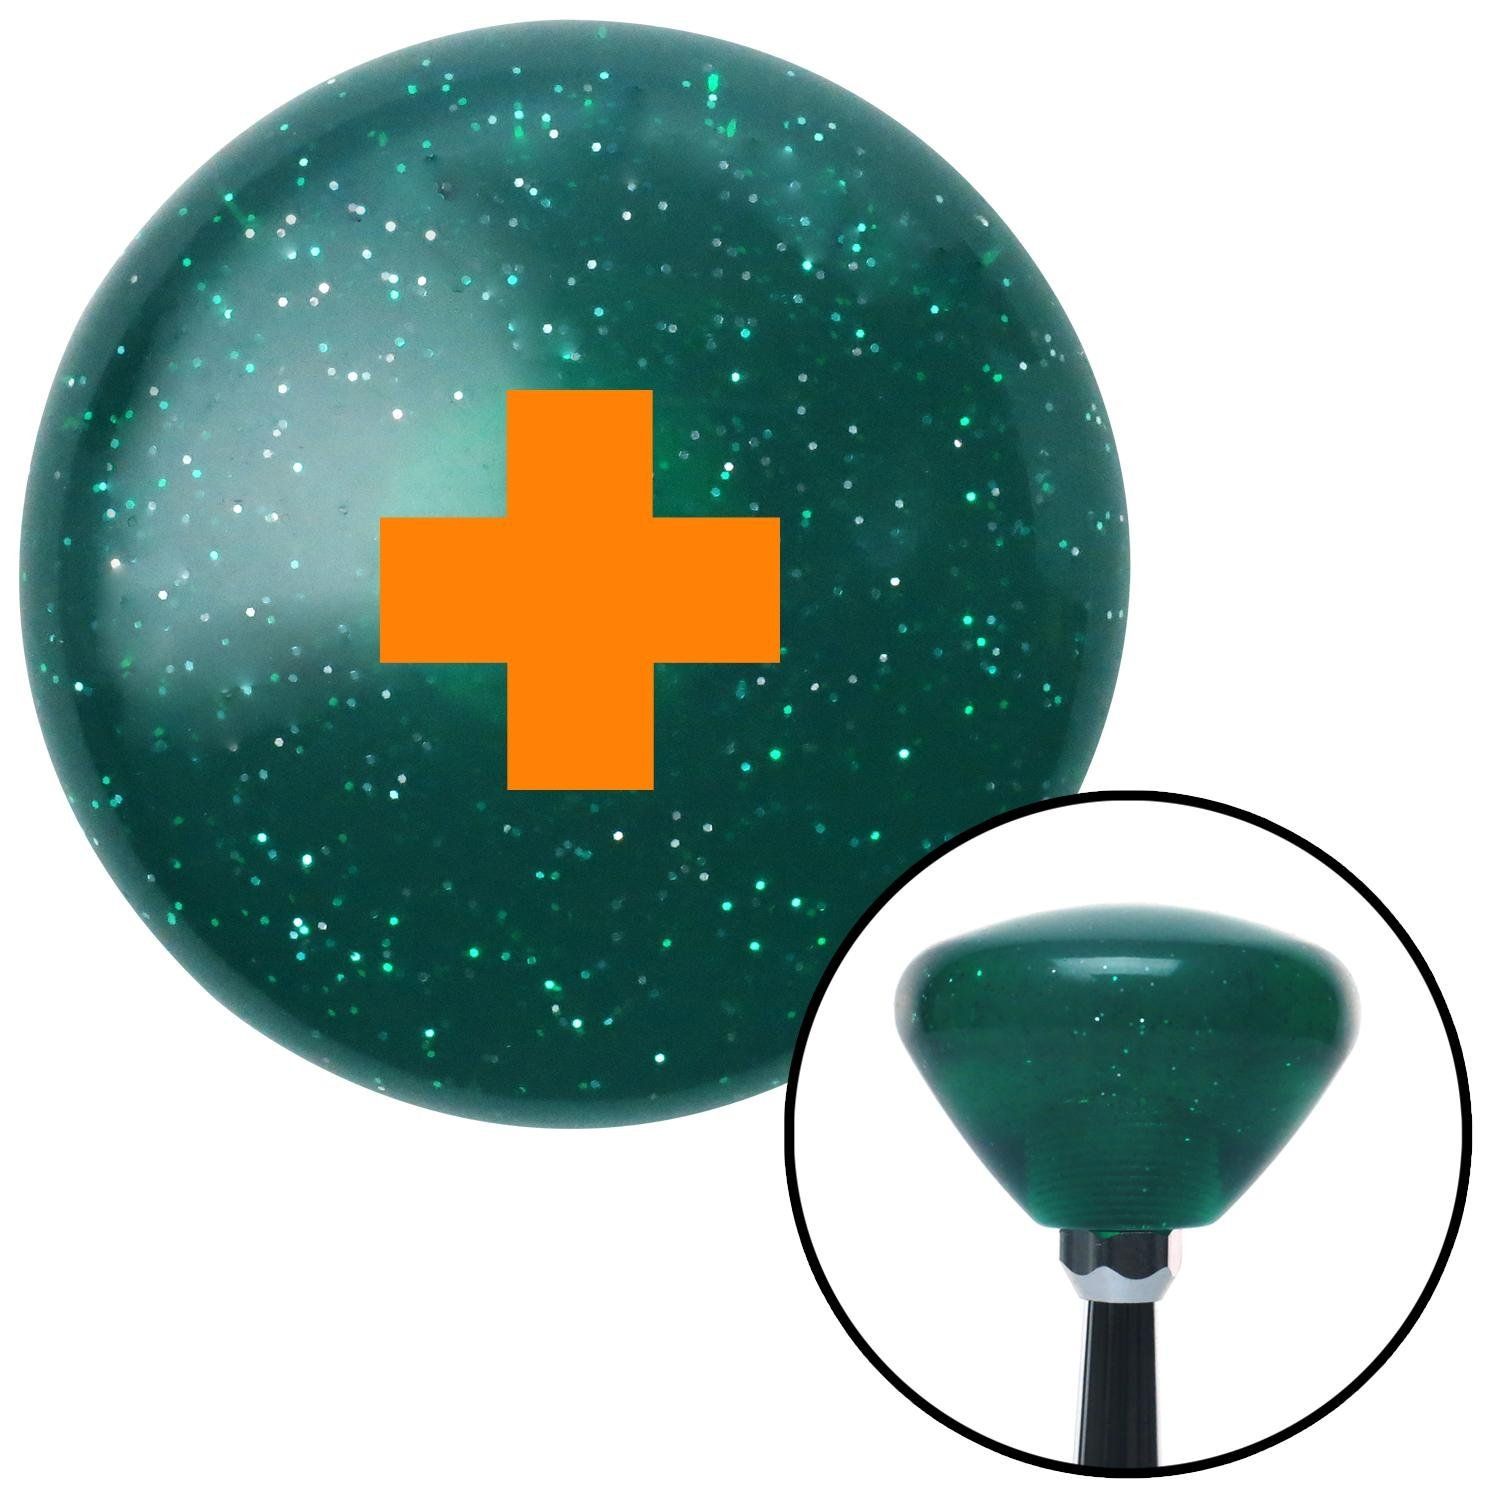 American Shifter 291571 Shift Knob Orange Cross Green Retro Metal Flake